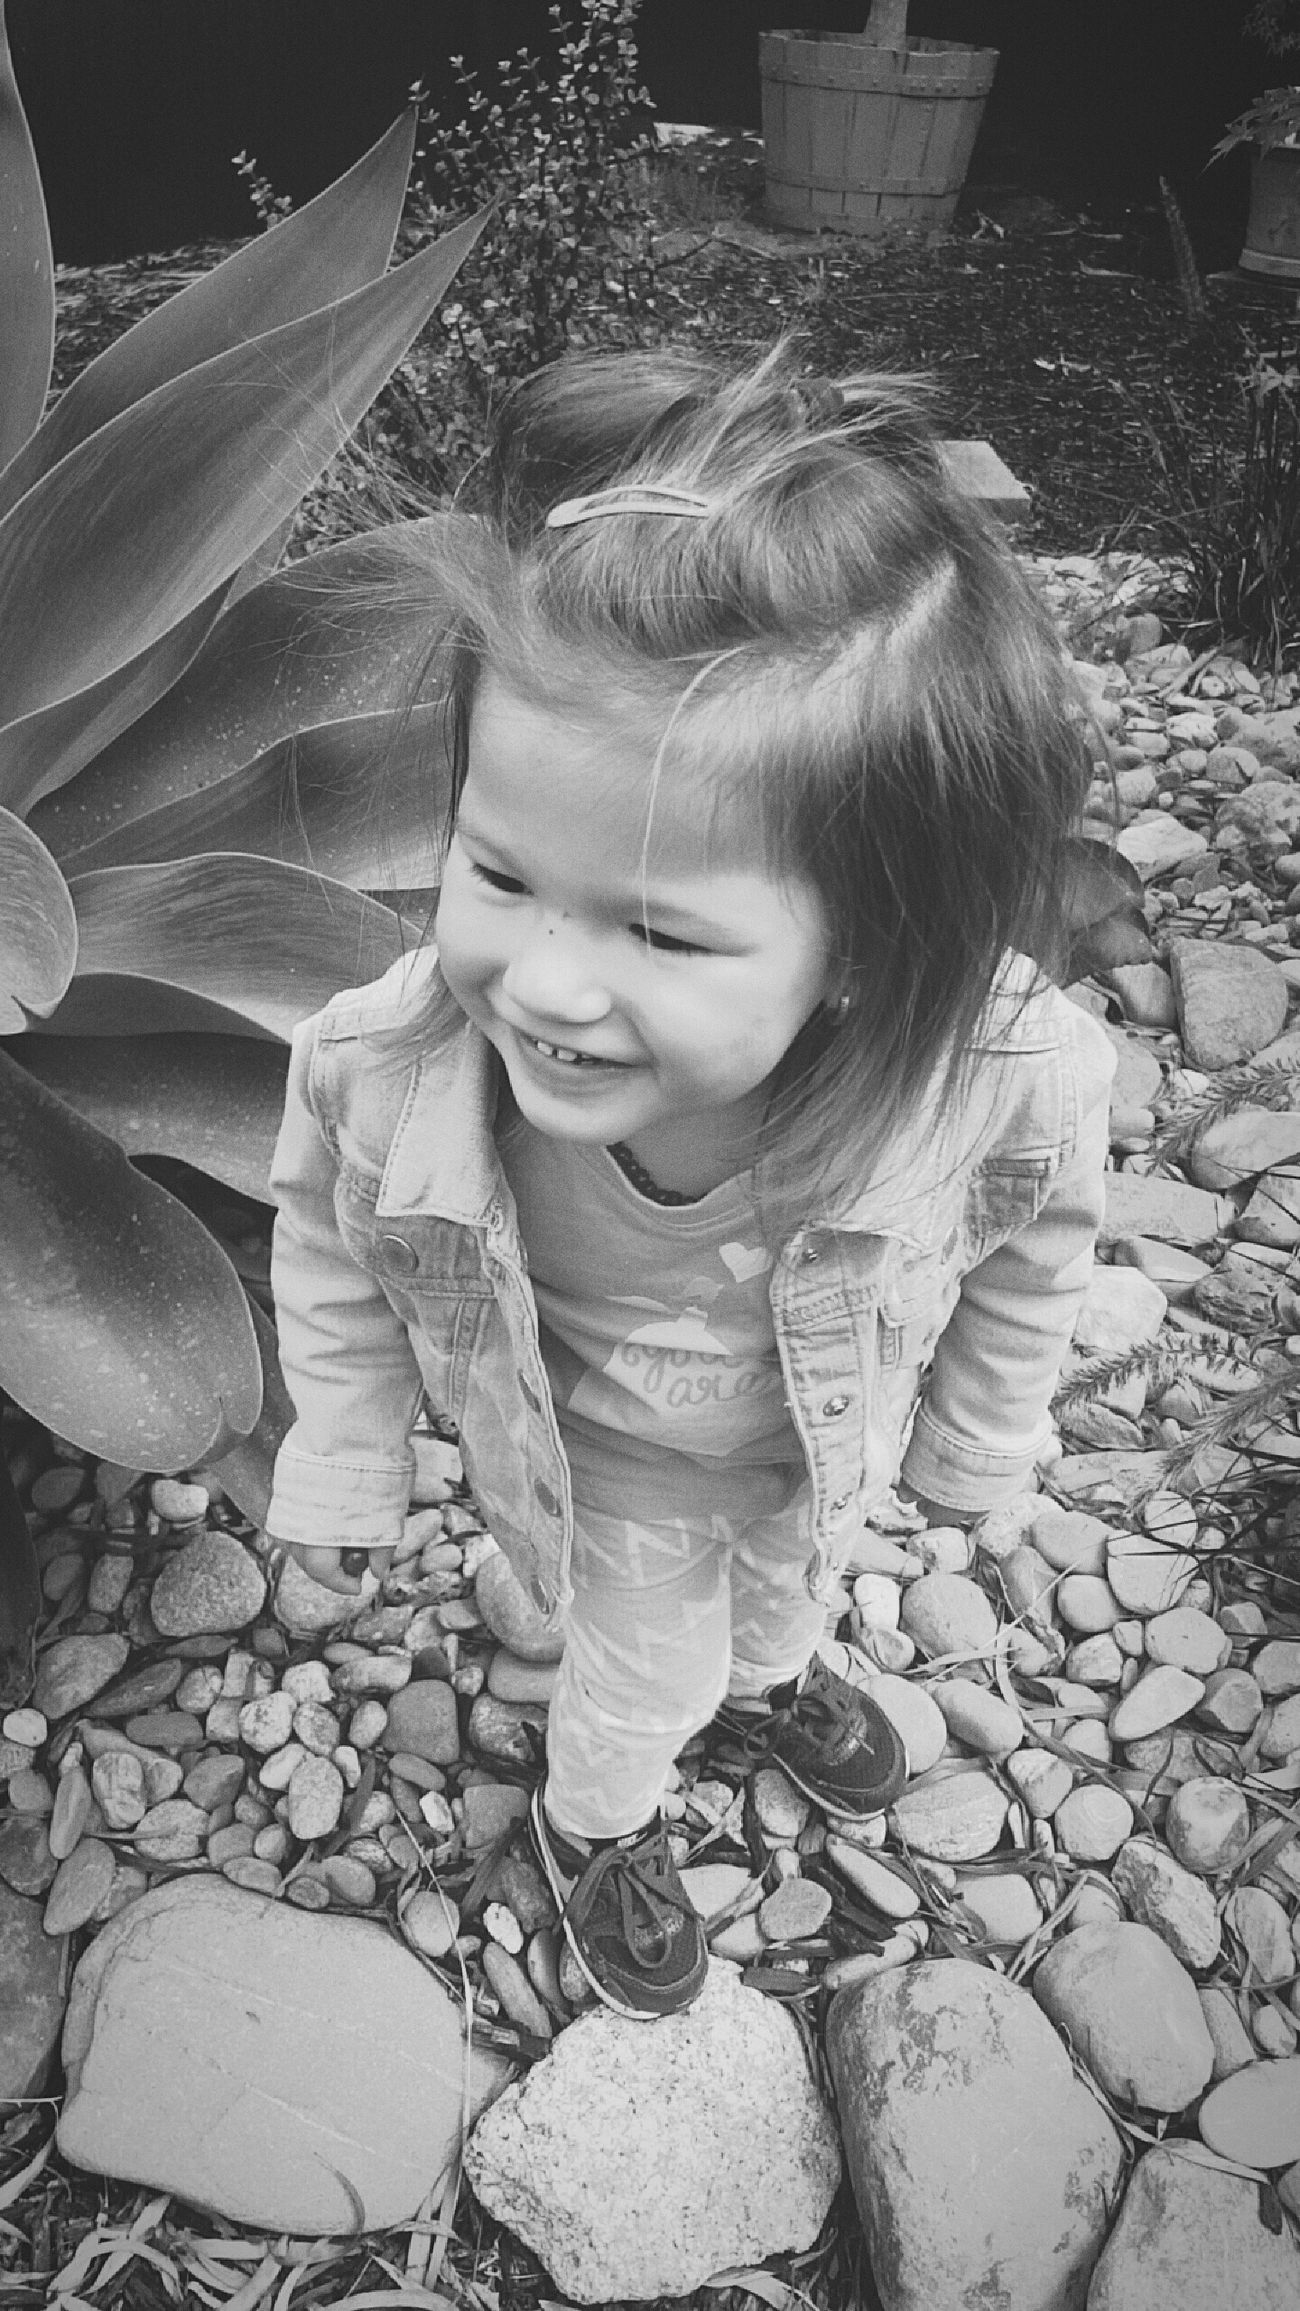 The little one Niece  Family Mylove Happy Kid Smiles Outdoors Backyard Gorgeous Home Inspire Love Createdaily Photography POTD Life